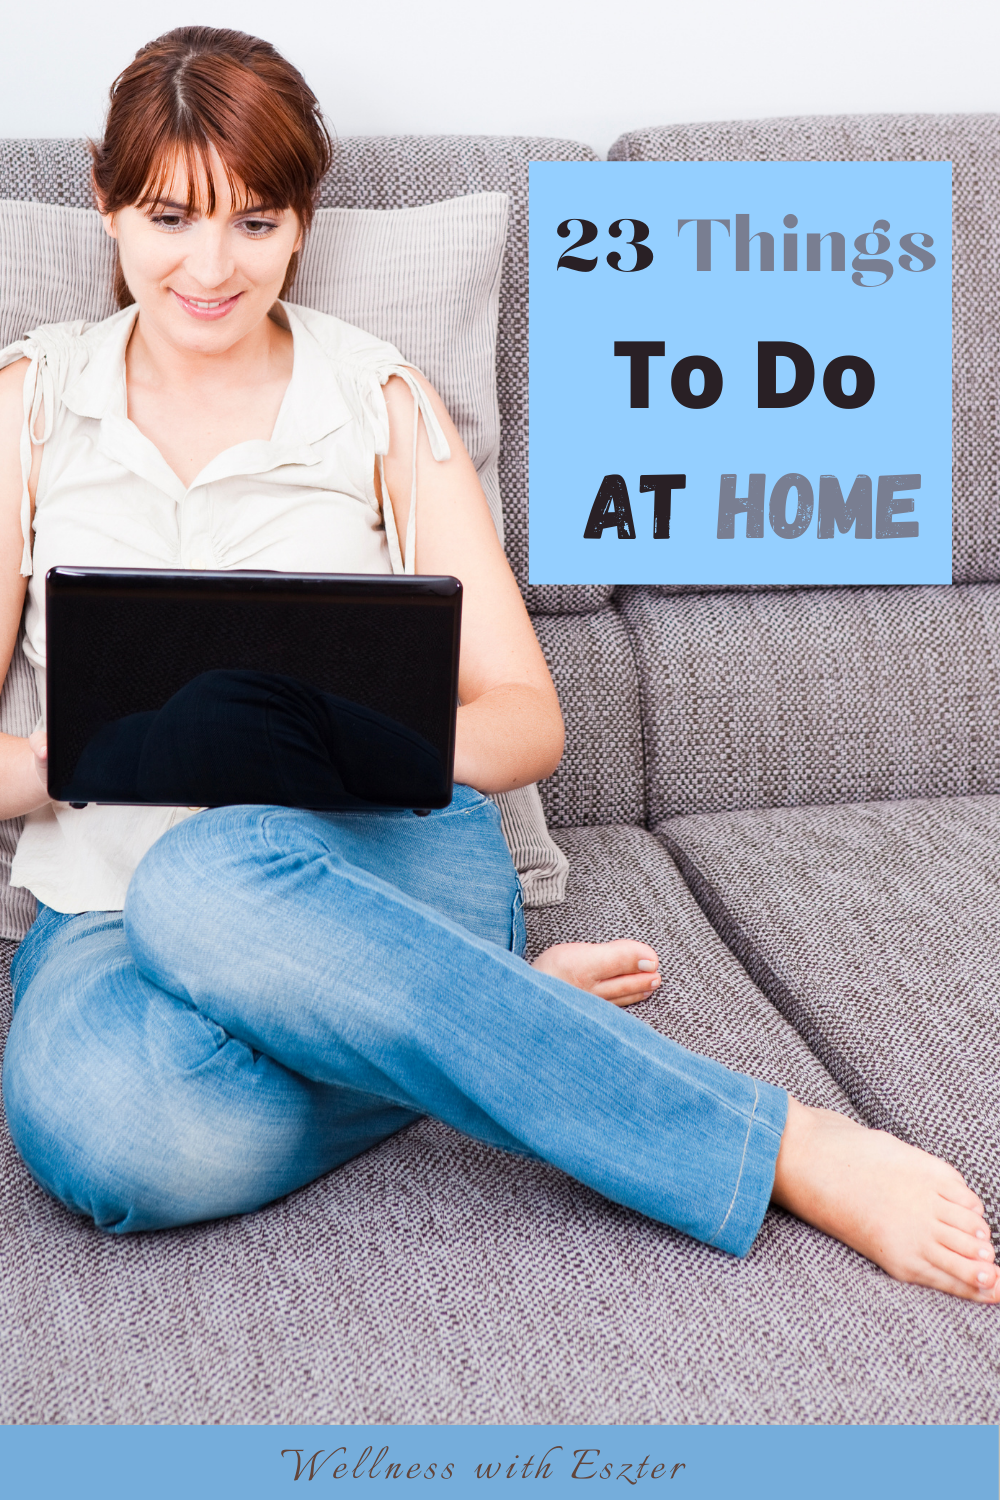 Here are the 23 activities to do when you are bored at home, so you feel more stimulated during self-isolation. #boredinquarantine #thingstododuringthequarantine #wellnesswitheszter #wellnessathome #weightlossforwomenover30